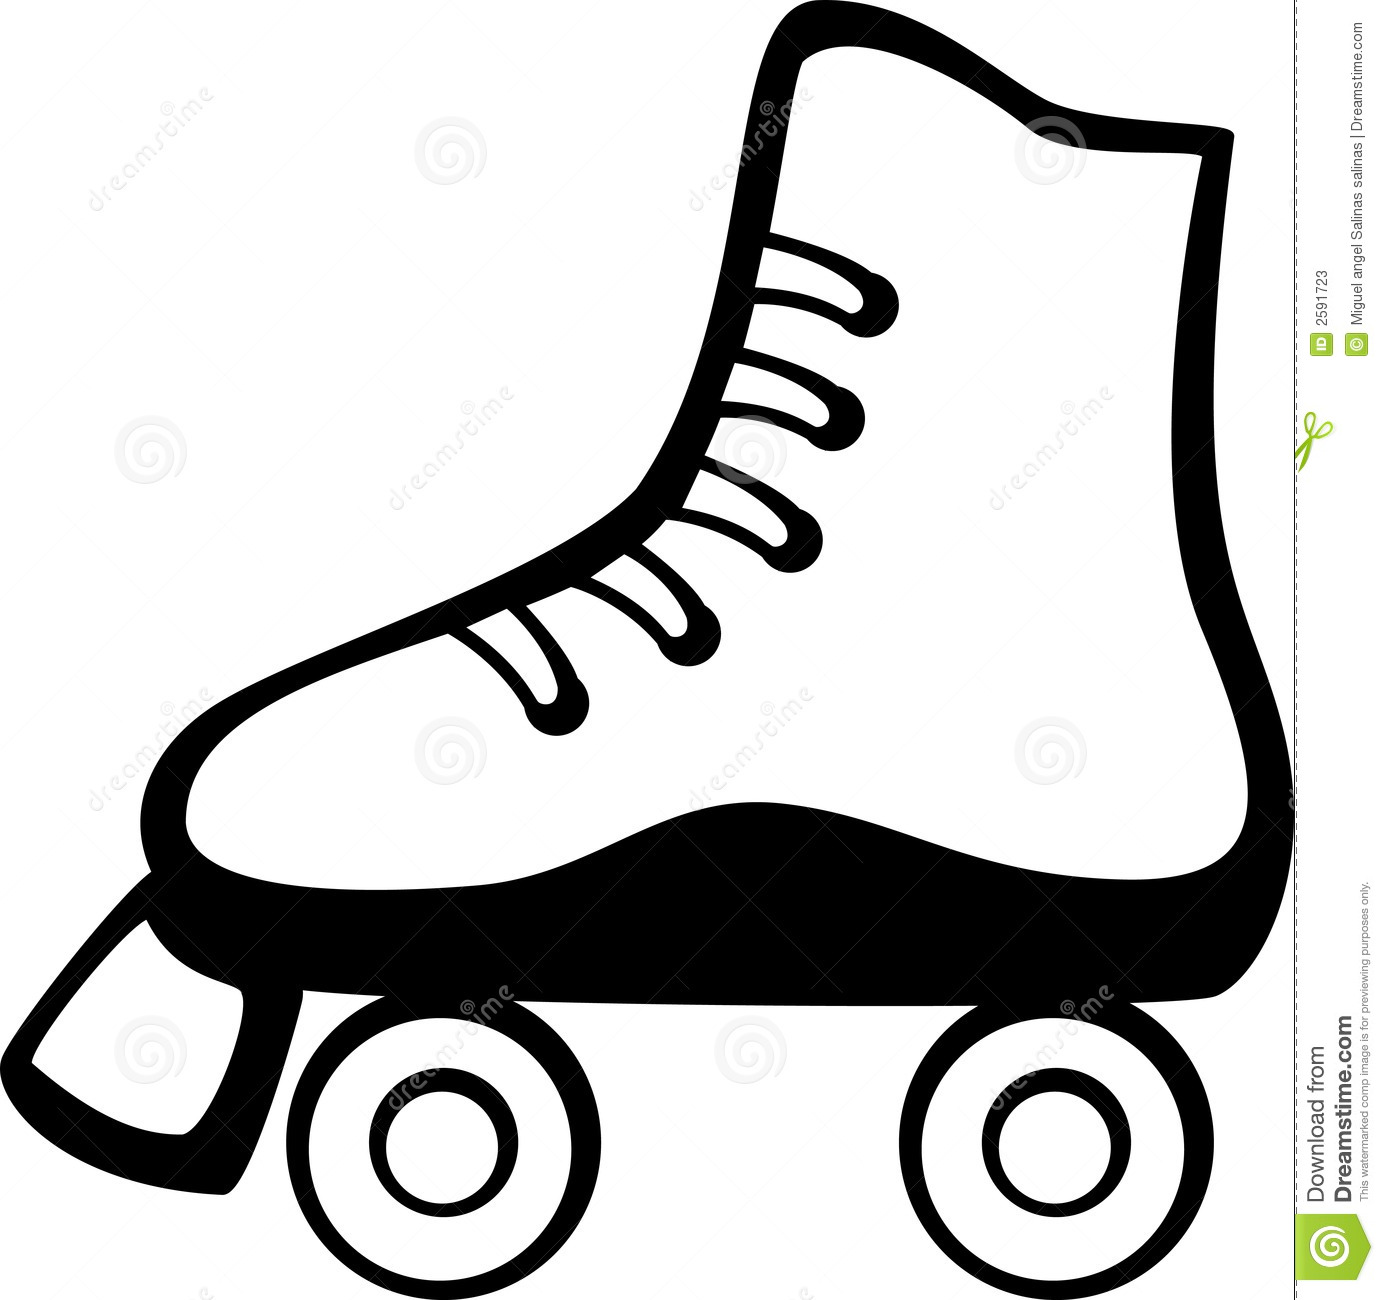 roller skating silhouette at getdrawings com free for personal use rh getdrawings com roller skate clip art websites roller skate clip art websites